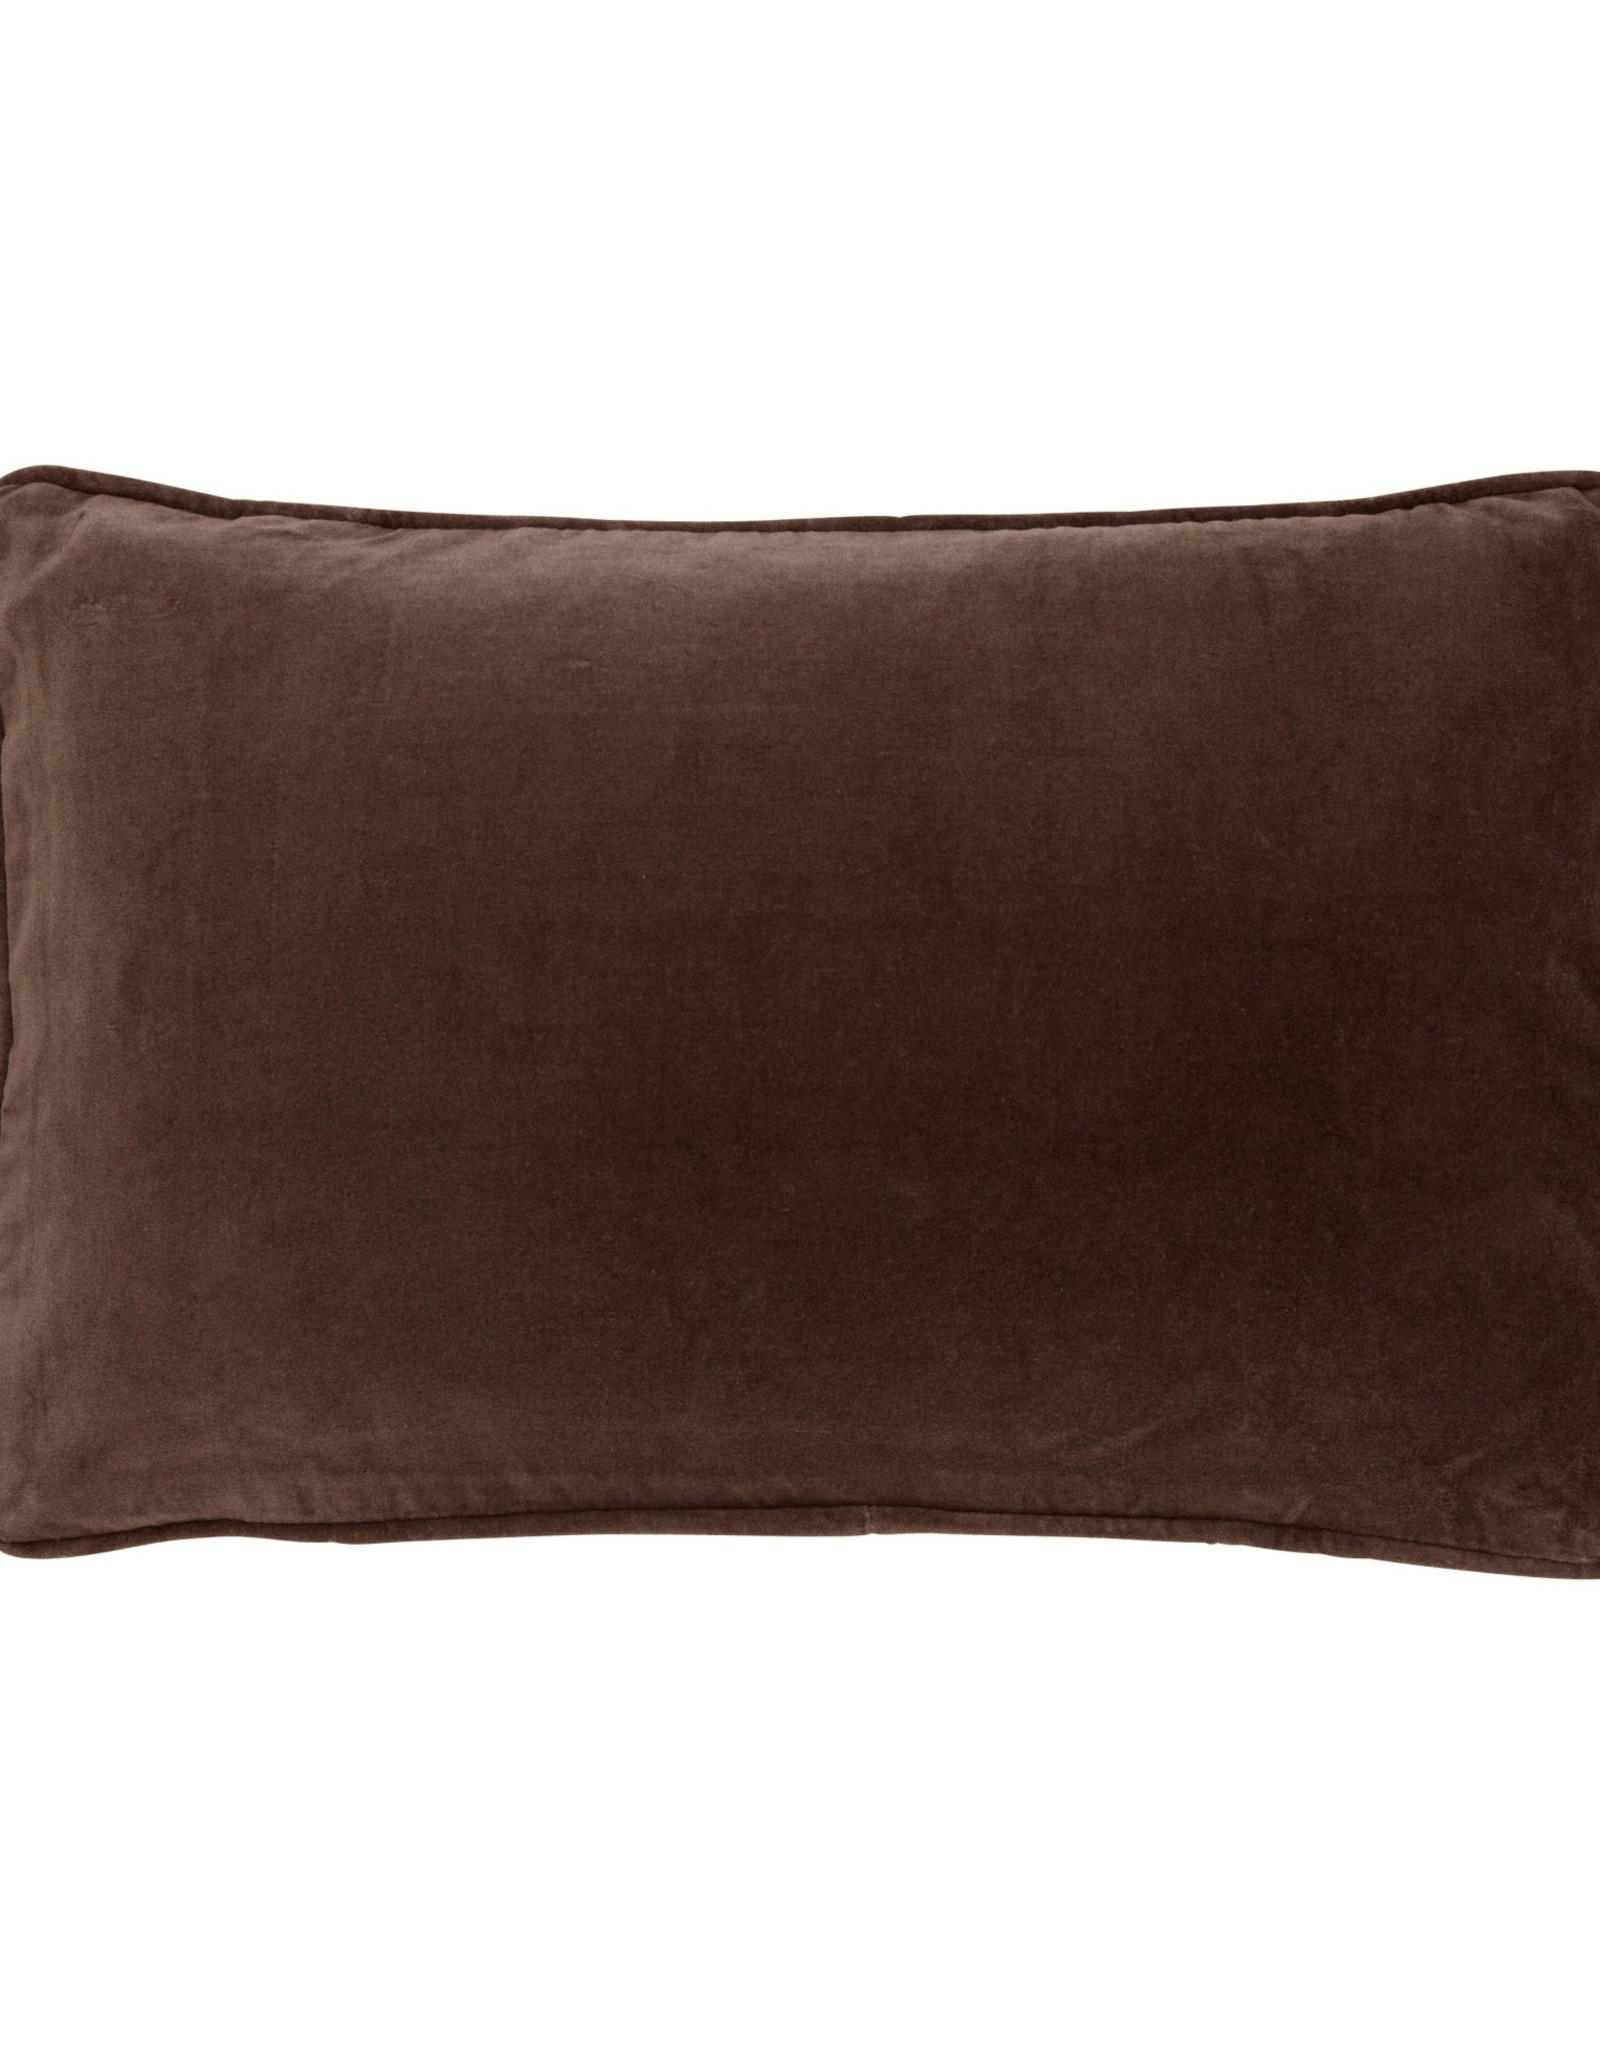 Bungalow Cushion Cover Chocolate - 33 x 50 cm